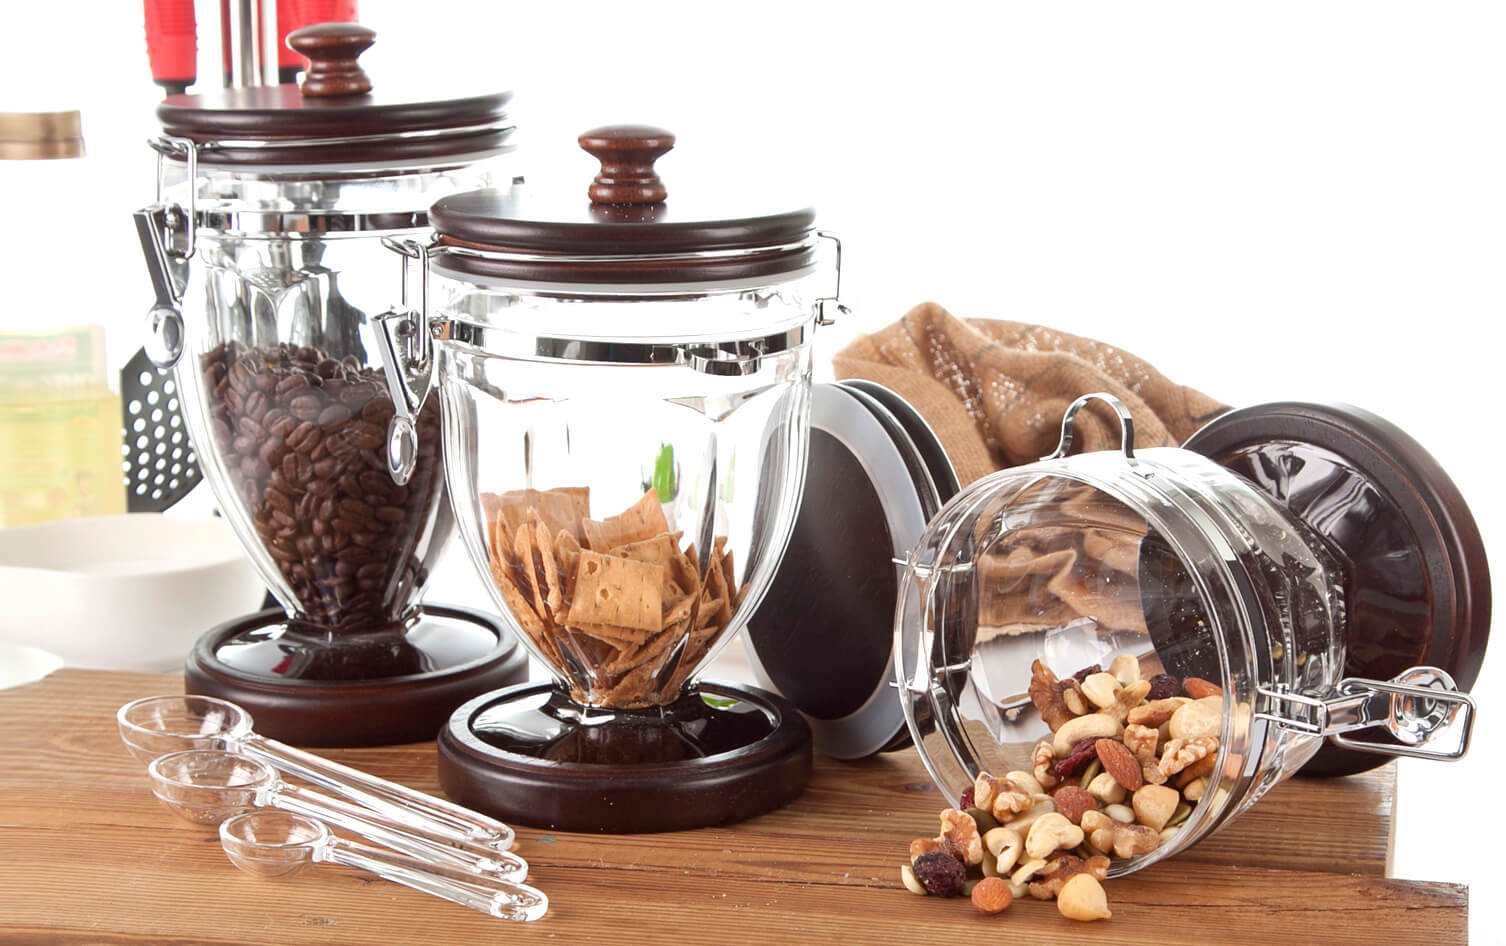 Organizing your kitchen pantry, staples and spices